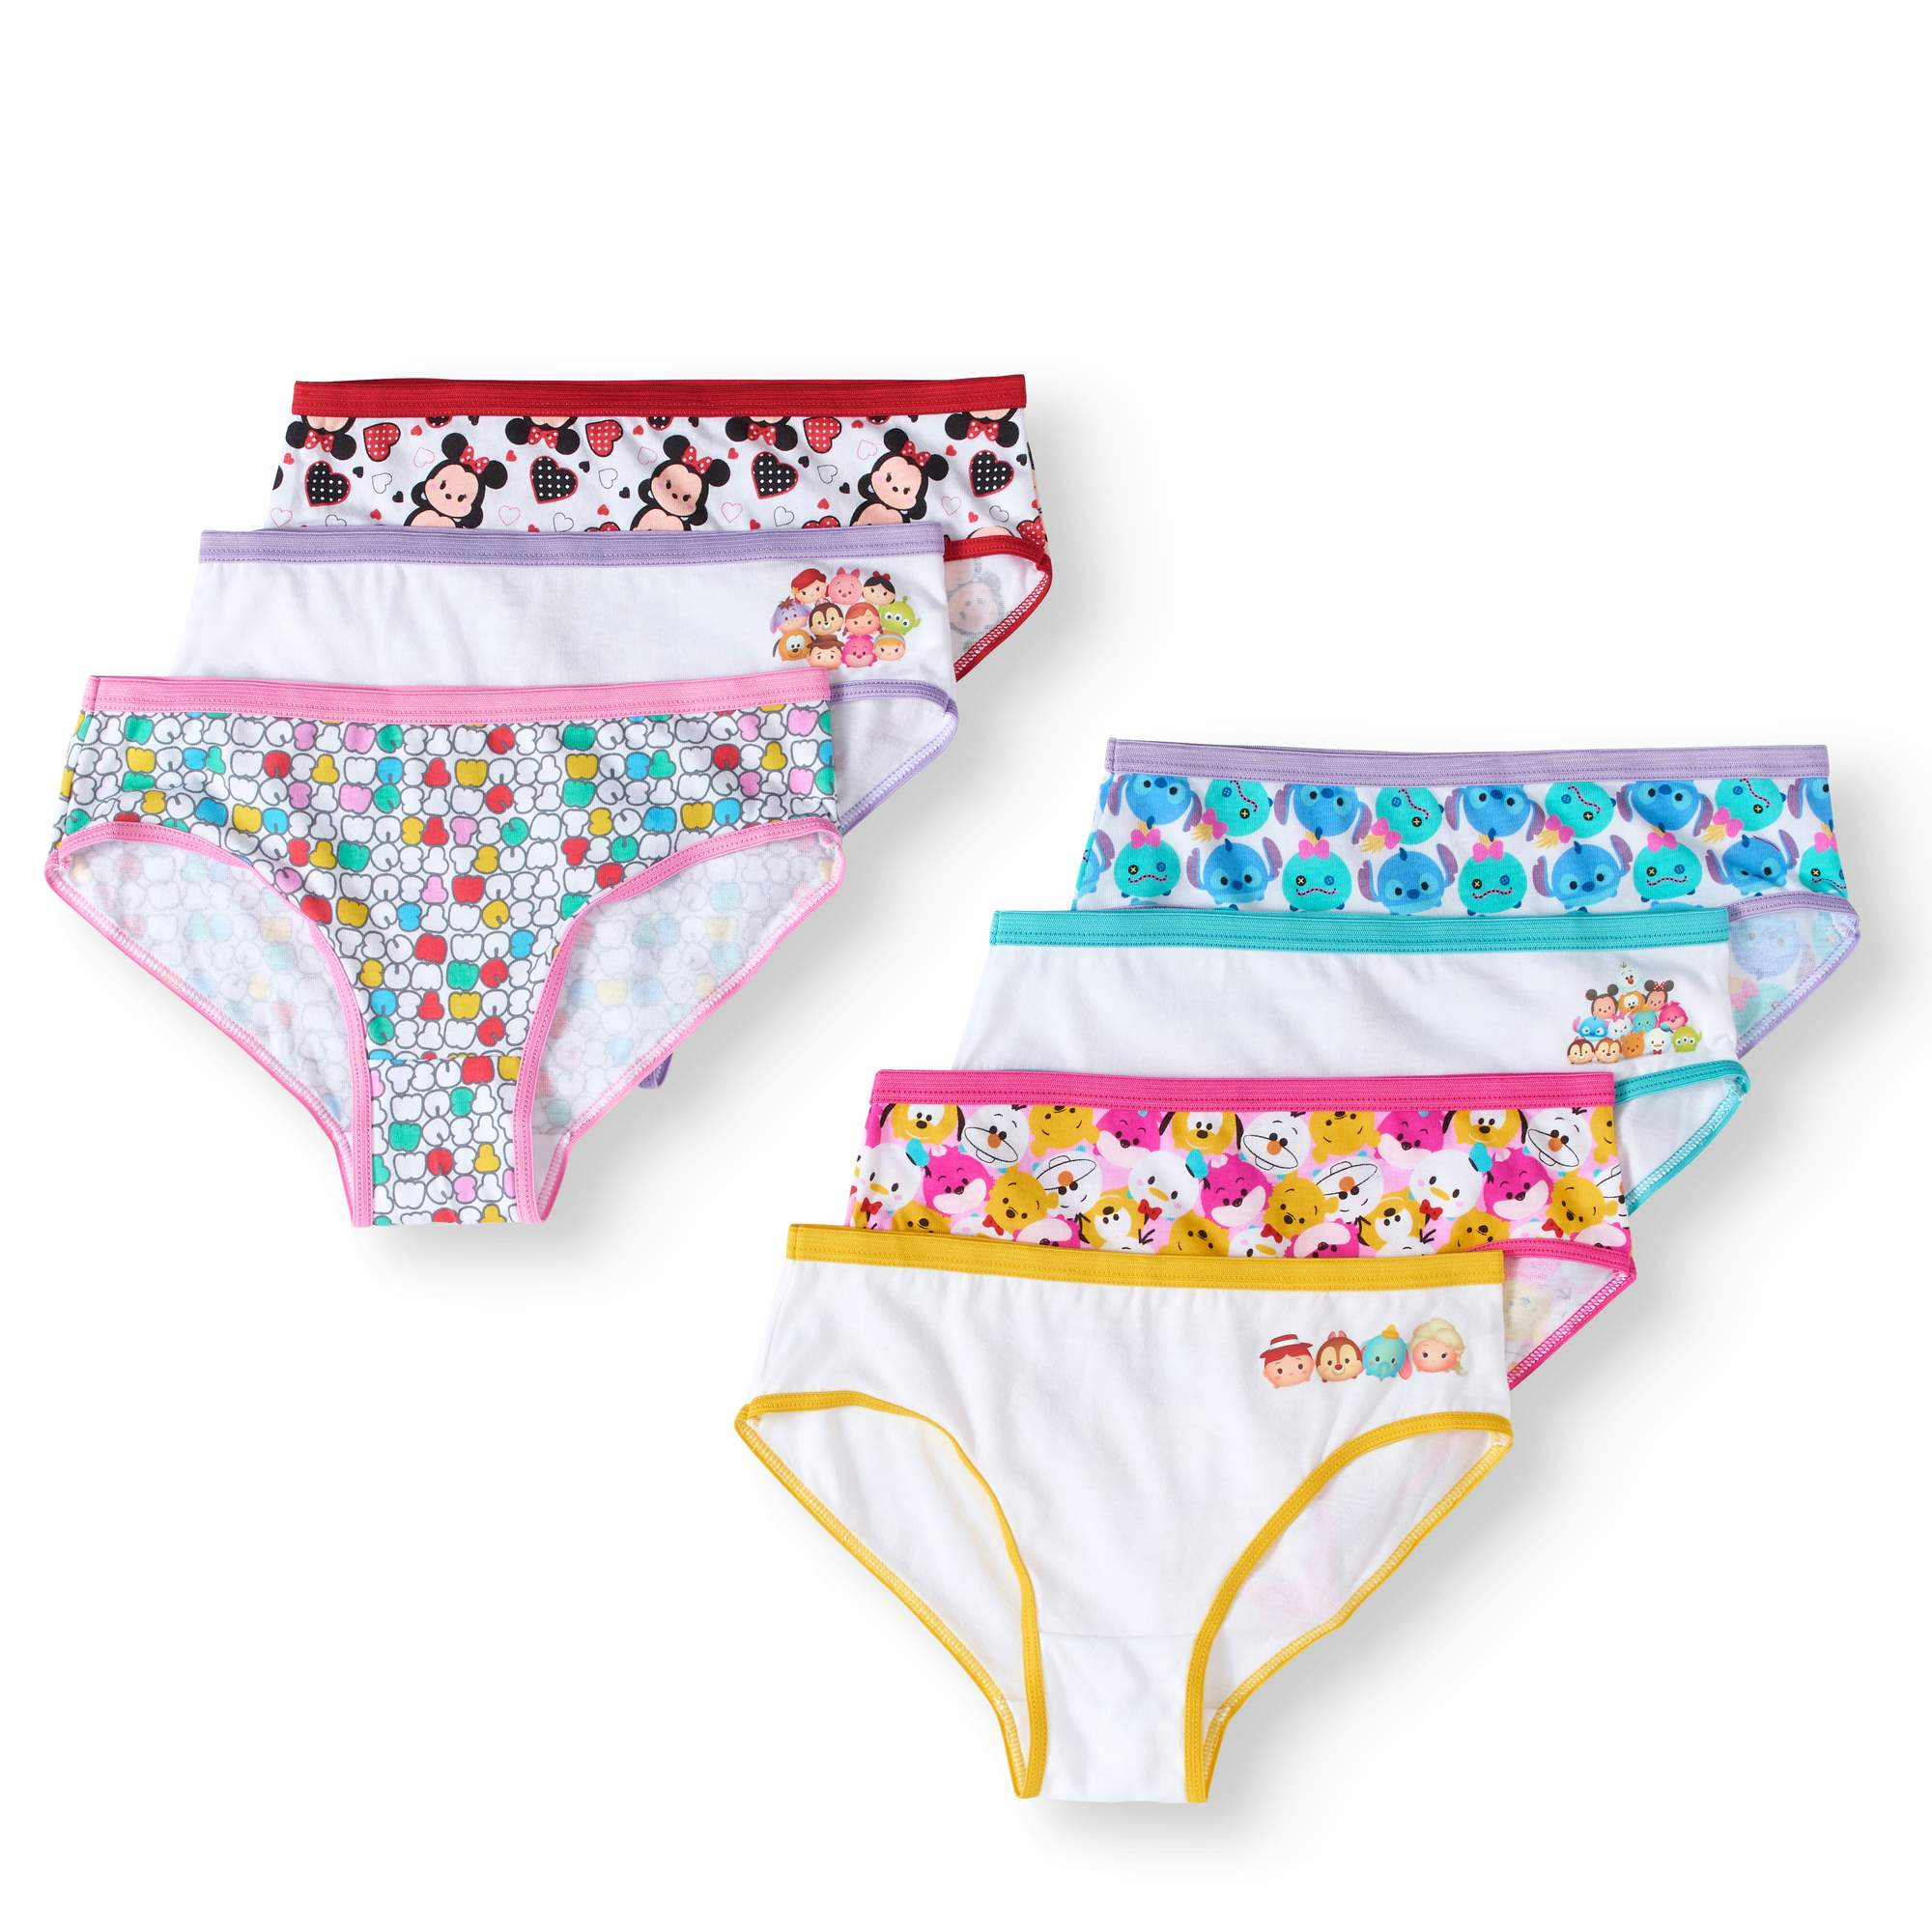 Tsum Tsum Girls' Underwear, 7-Pack